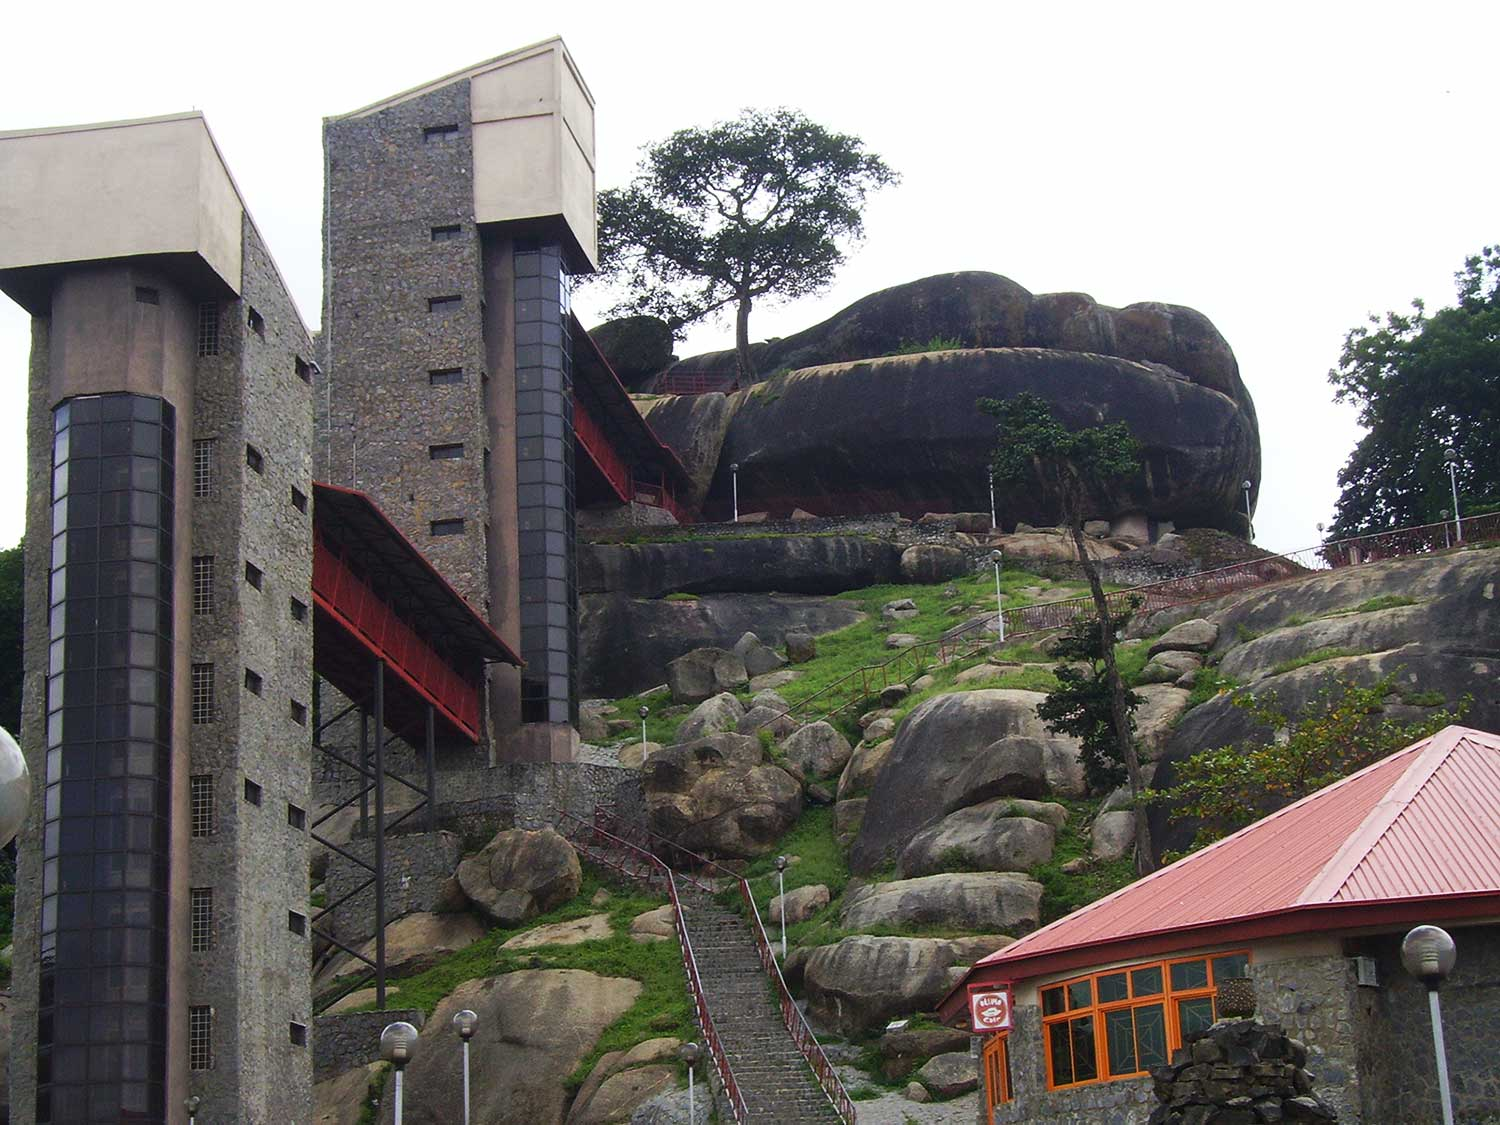 Olumo Tourist Complex 1 - 10 Interesting Places In Nigeria, You Just Might Want To Visit Soon